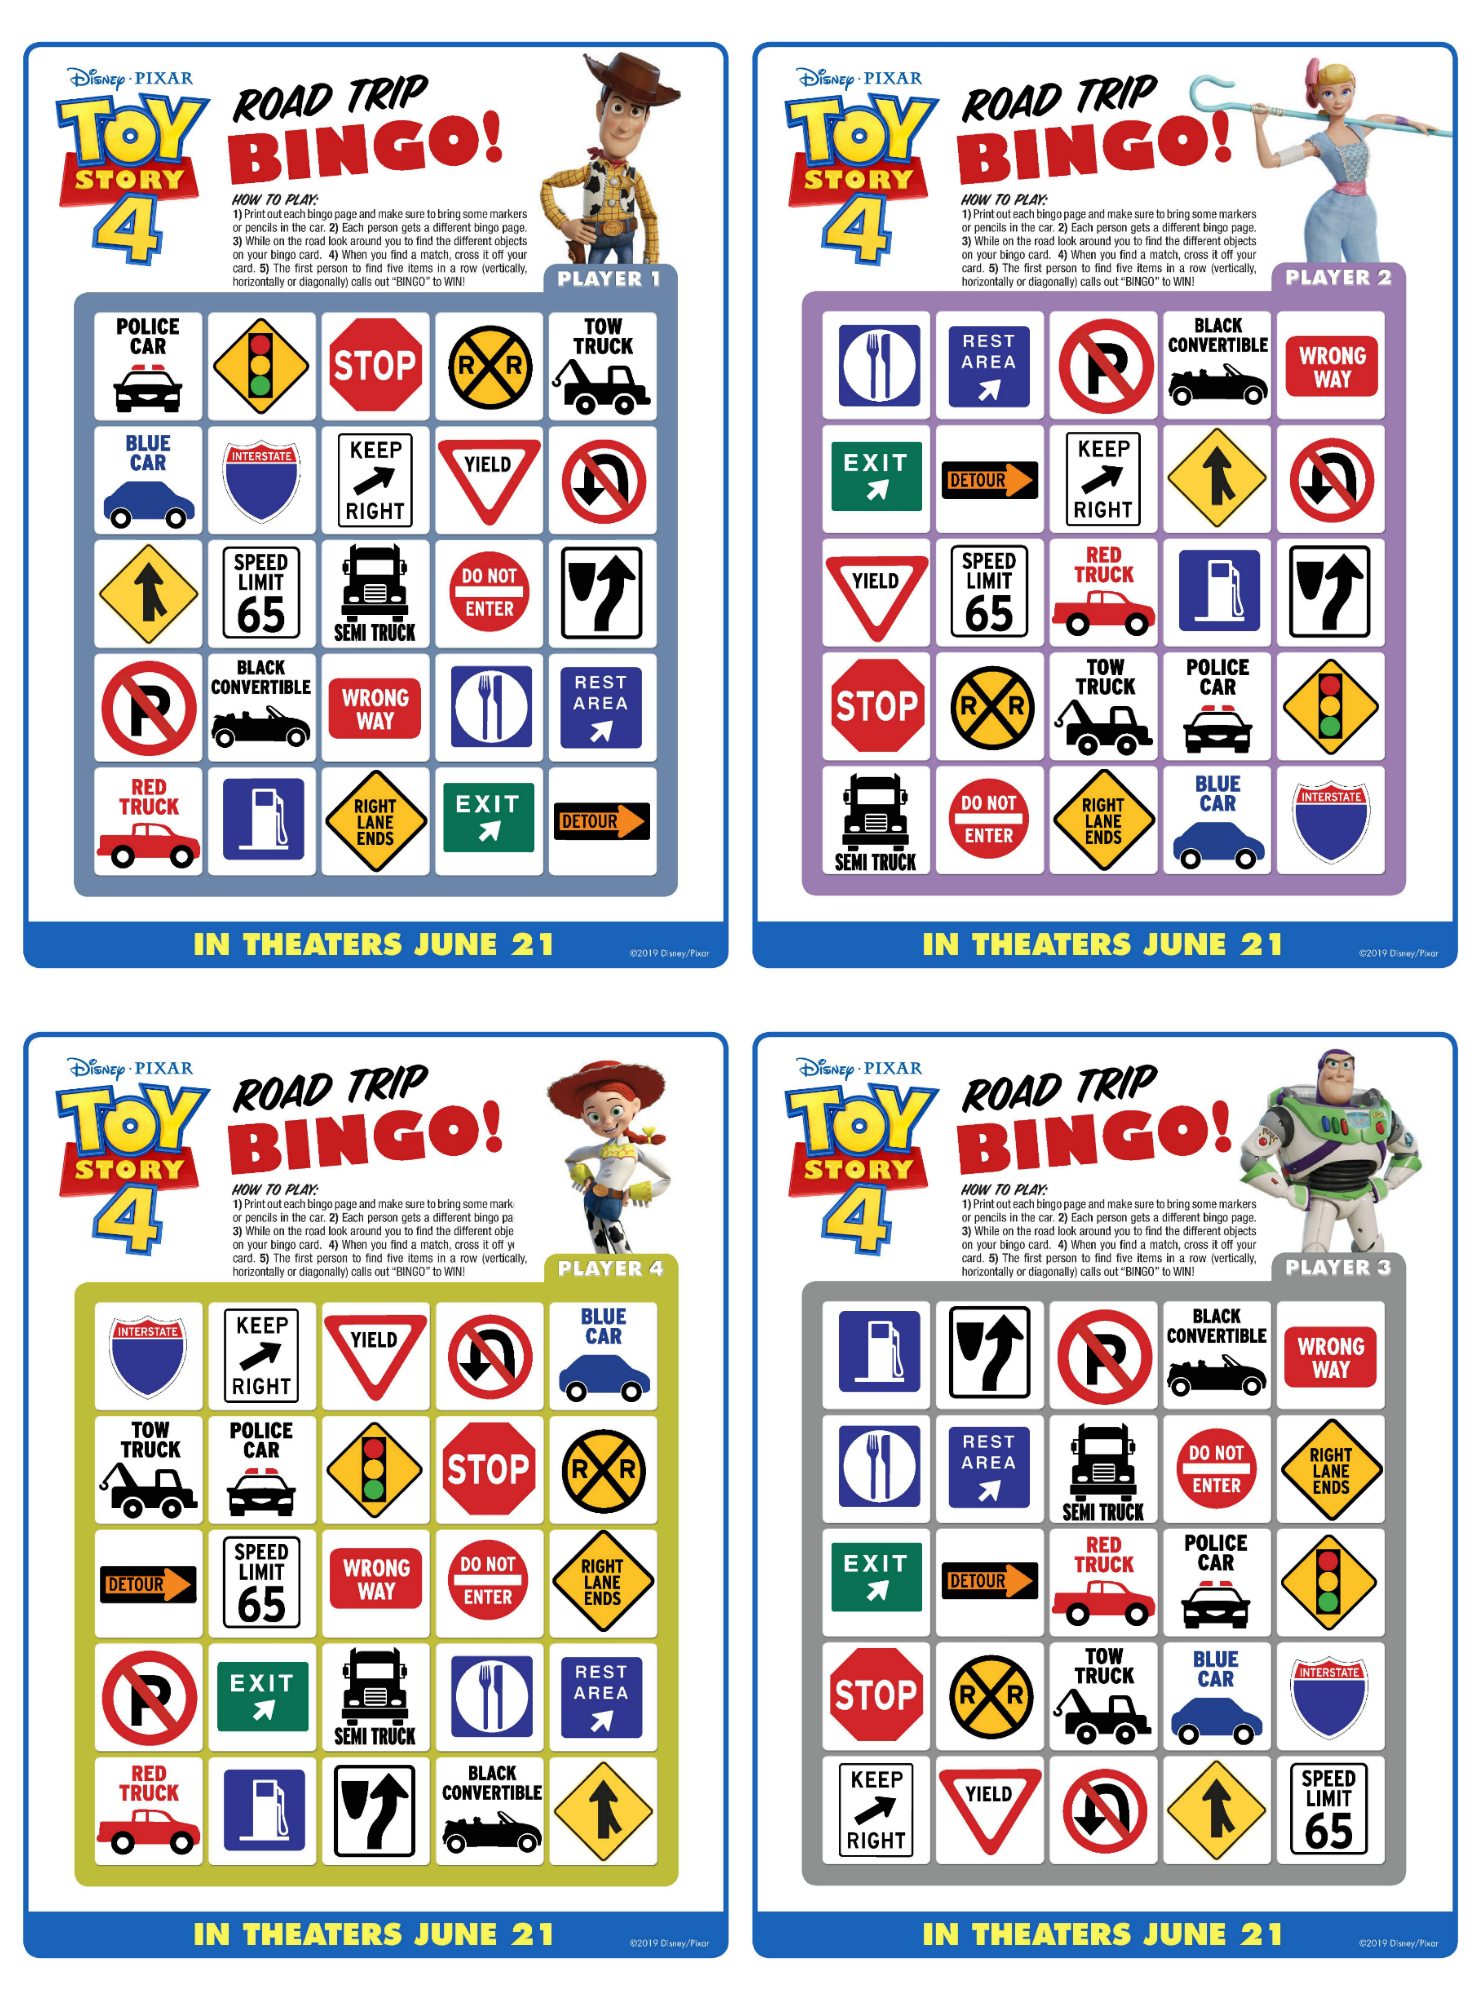 image regarding Disney Bingo Printable named Toy Tale 4 Printable Highway Vacation Bingo For Household Trip